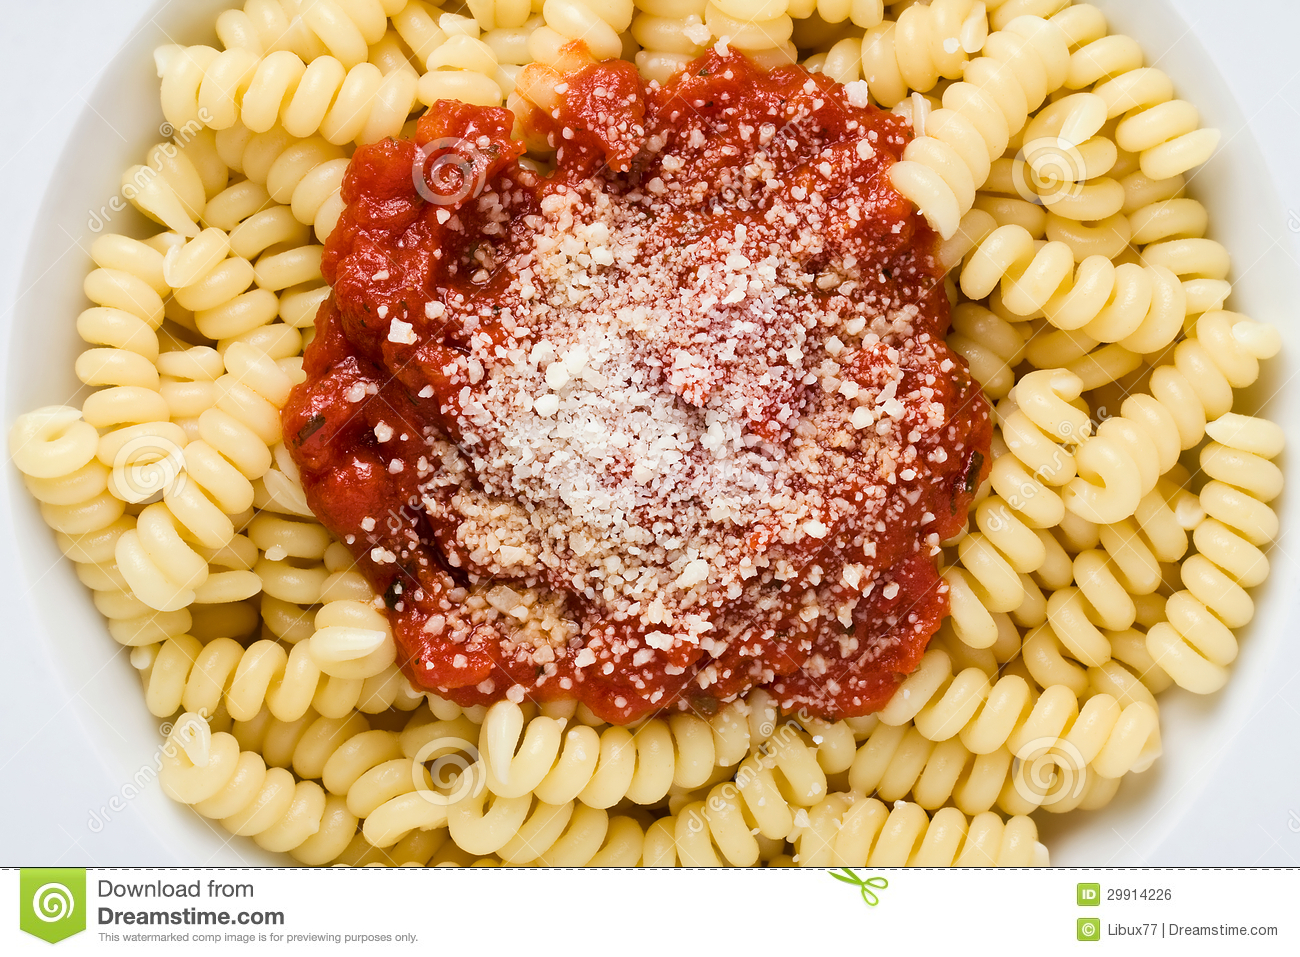 Top view close up of pasta with tomato sauce and parmesan cheese.